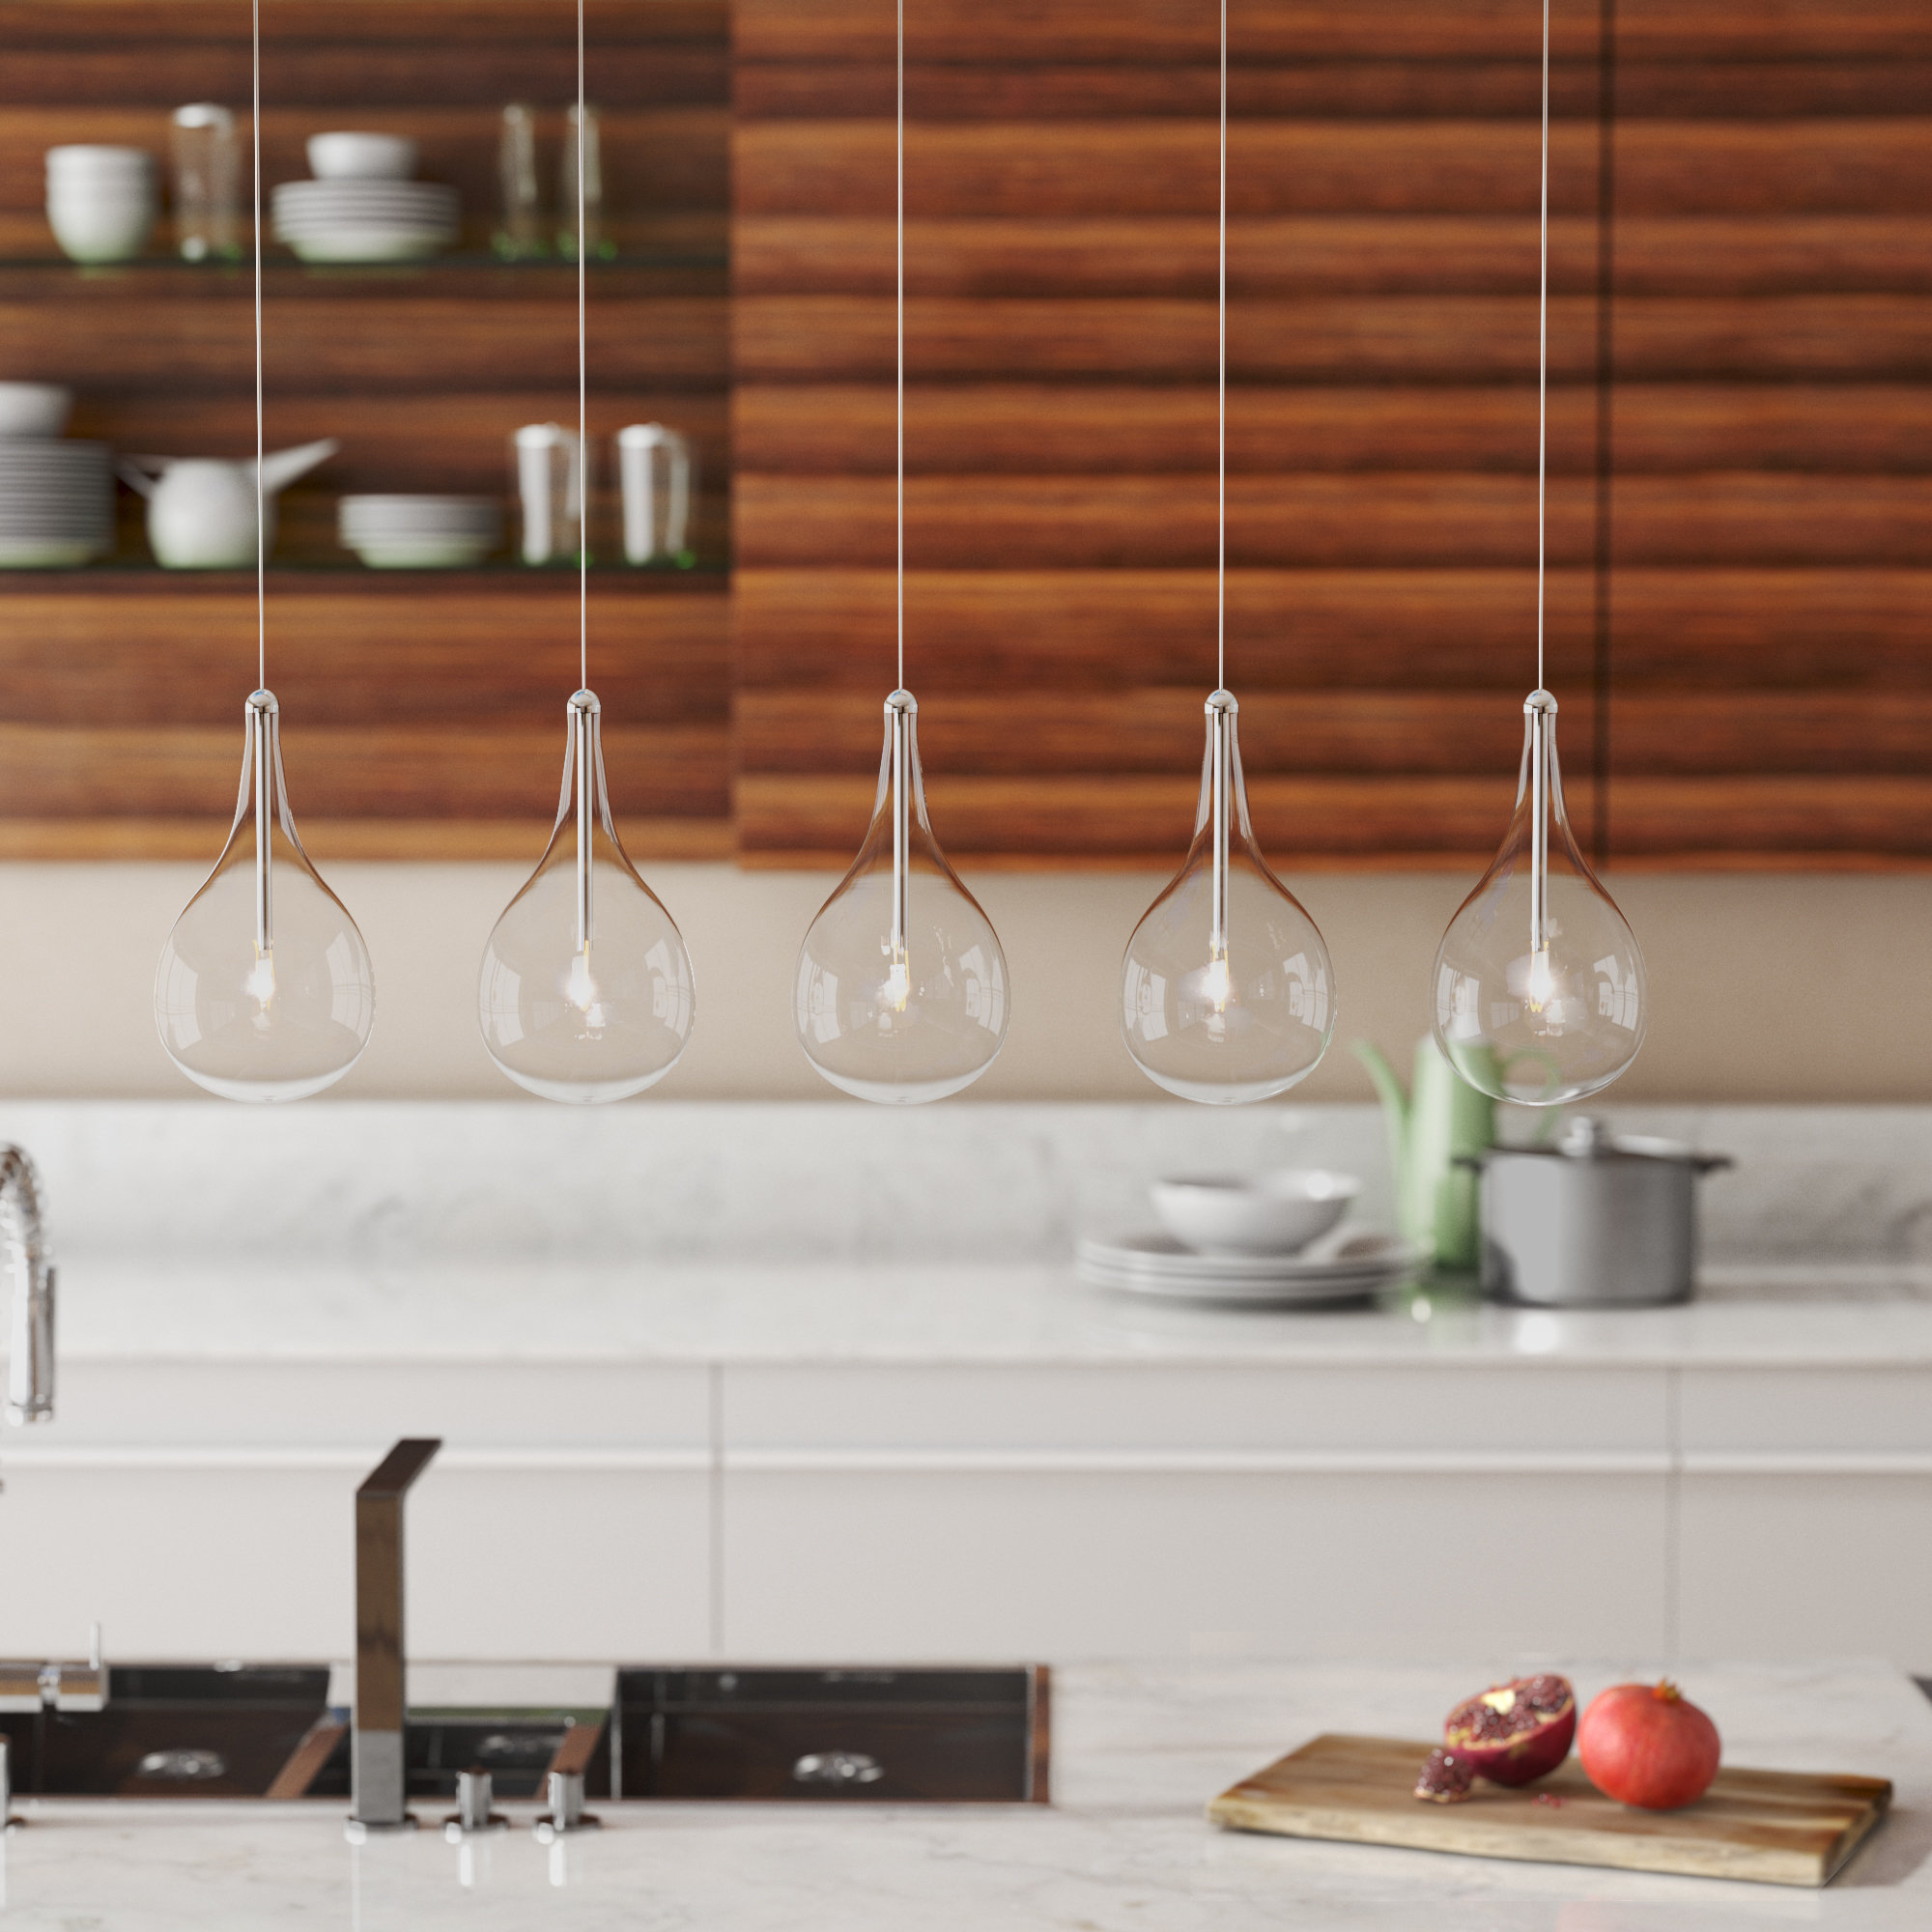 Most Up To Date Neal 9 Light Kitchen Island Teardrop Pendants Inside Neal 5 Light Kitchen Island Teardrop Pendant (View 7 of 25)